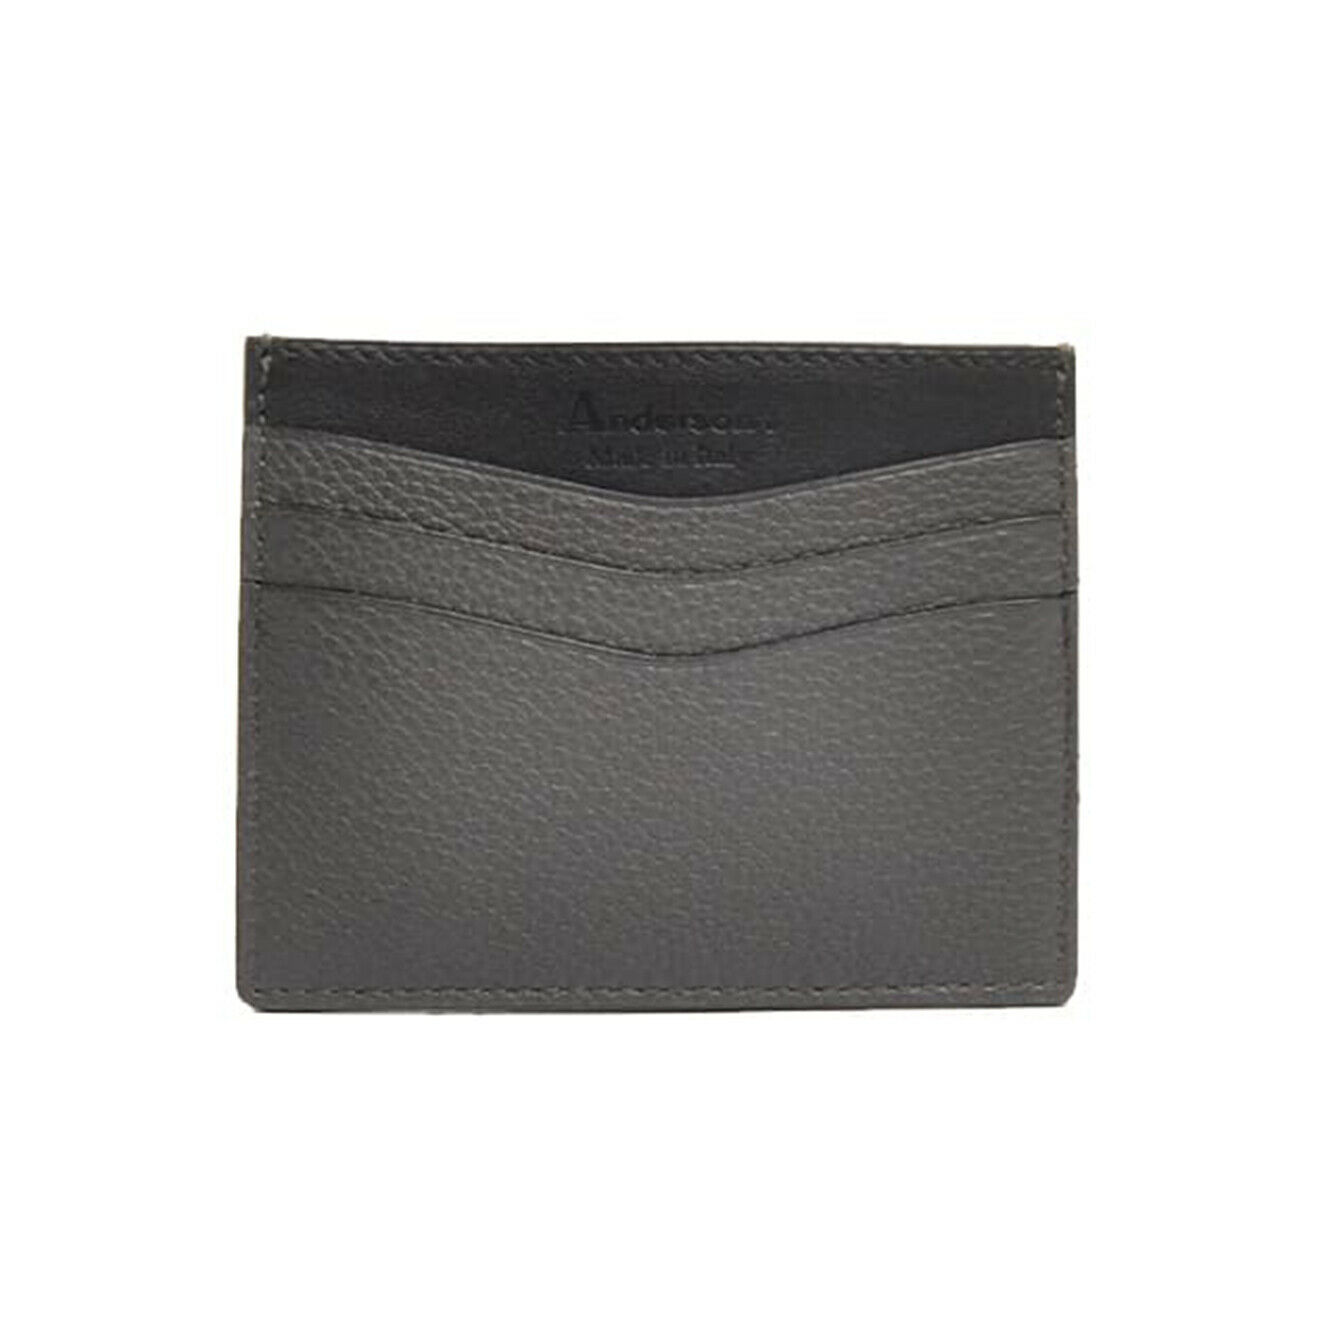 Andersons Leather Card Holder Grey - SALE!!